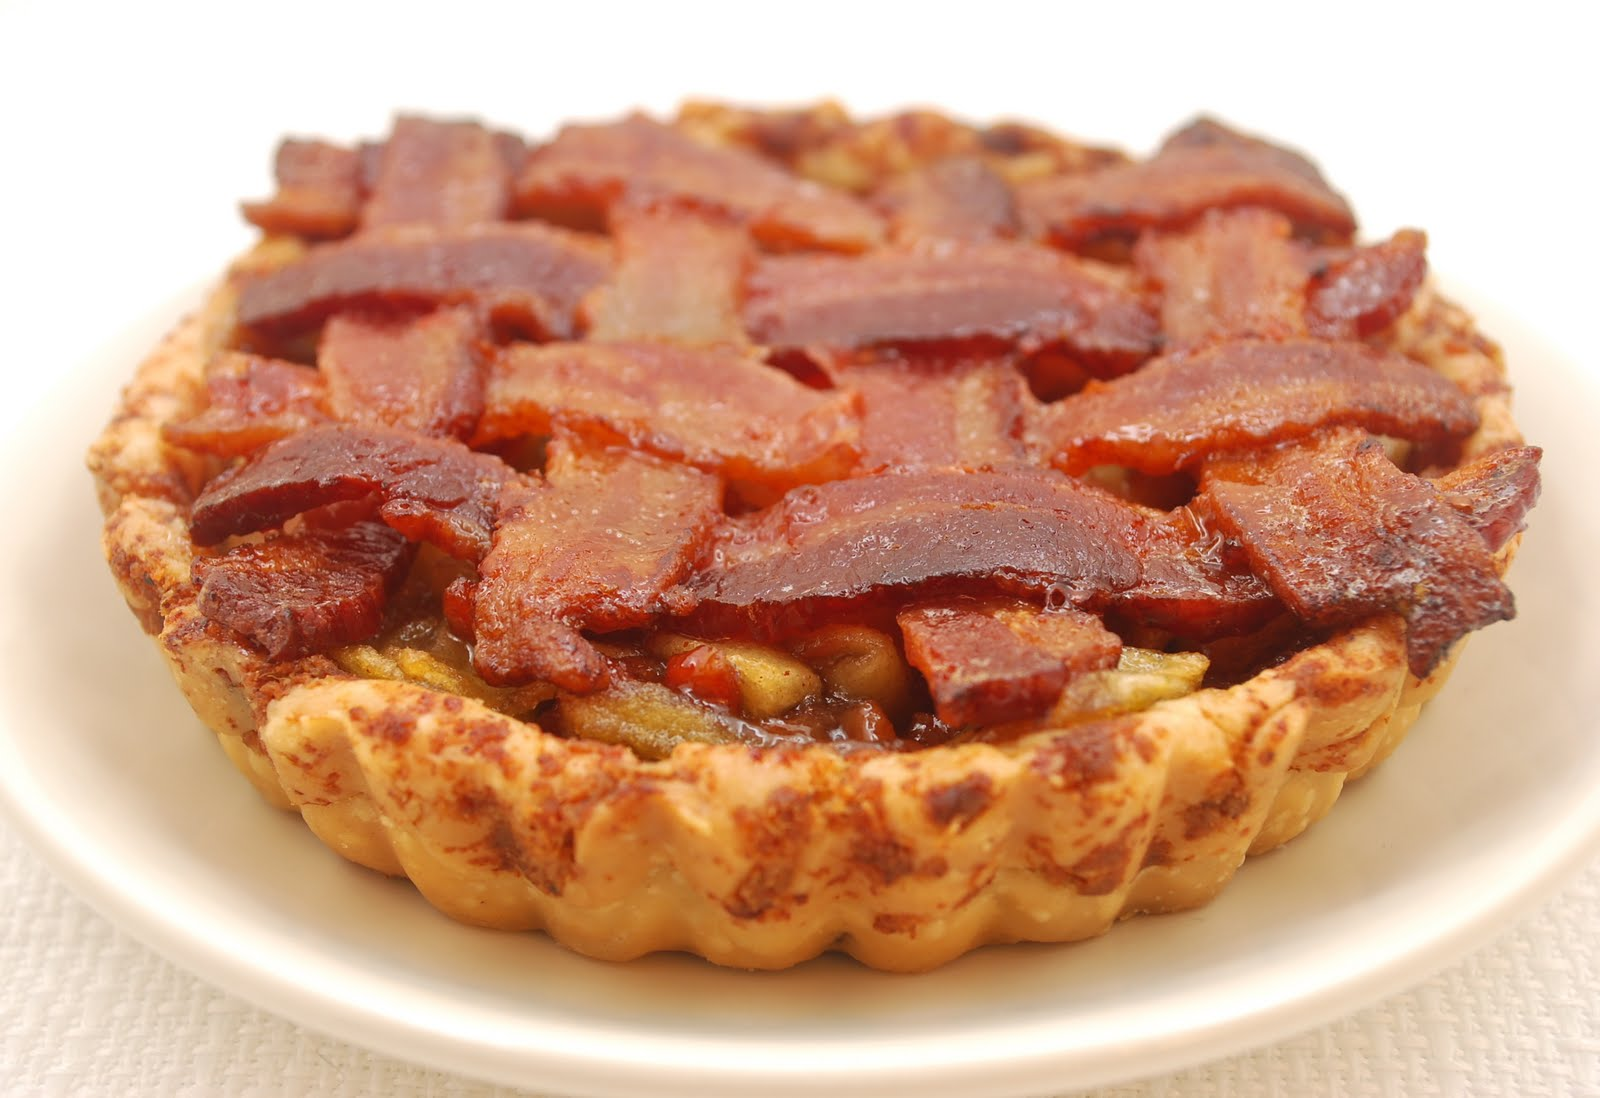 Bacon on Apple Pie? Maple Bacon Donuts? Yum!